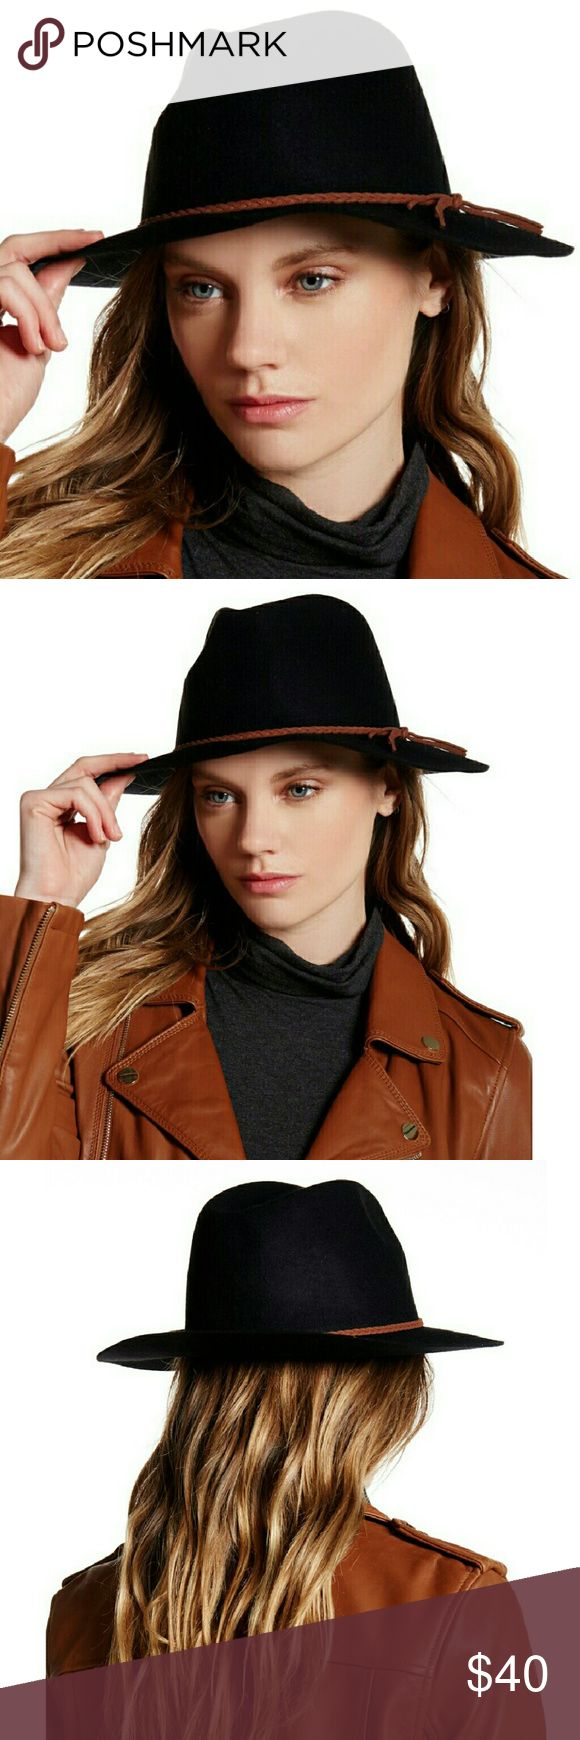 """🔴SALE OF THE SEASON!🔴 DAVID & YOUNG Twine Band Wool Fedora in black is new with tag! Features a dented crown with twine band and a wide floppy brim. Right on trend!   - Approx. 2.5"""" brim - 100% wool - Dry clean only  🚫No Trades 🙄😘  ✔FINAL PRICE 👈🤑 ❔Please Ask ?'s BEFORE you Buy🤔😃 ❤Thank you for stopping by! Happy Holidays!🎅🎄 Real Haute Trends  Accessories Hats"""